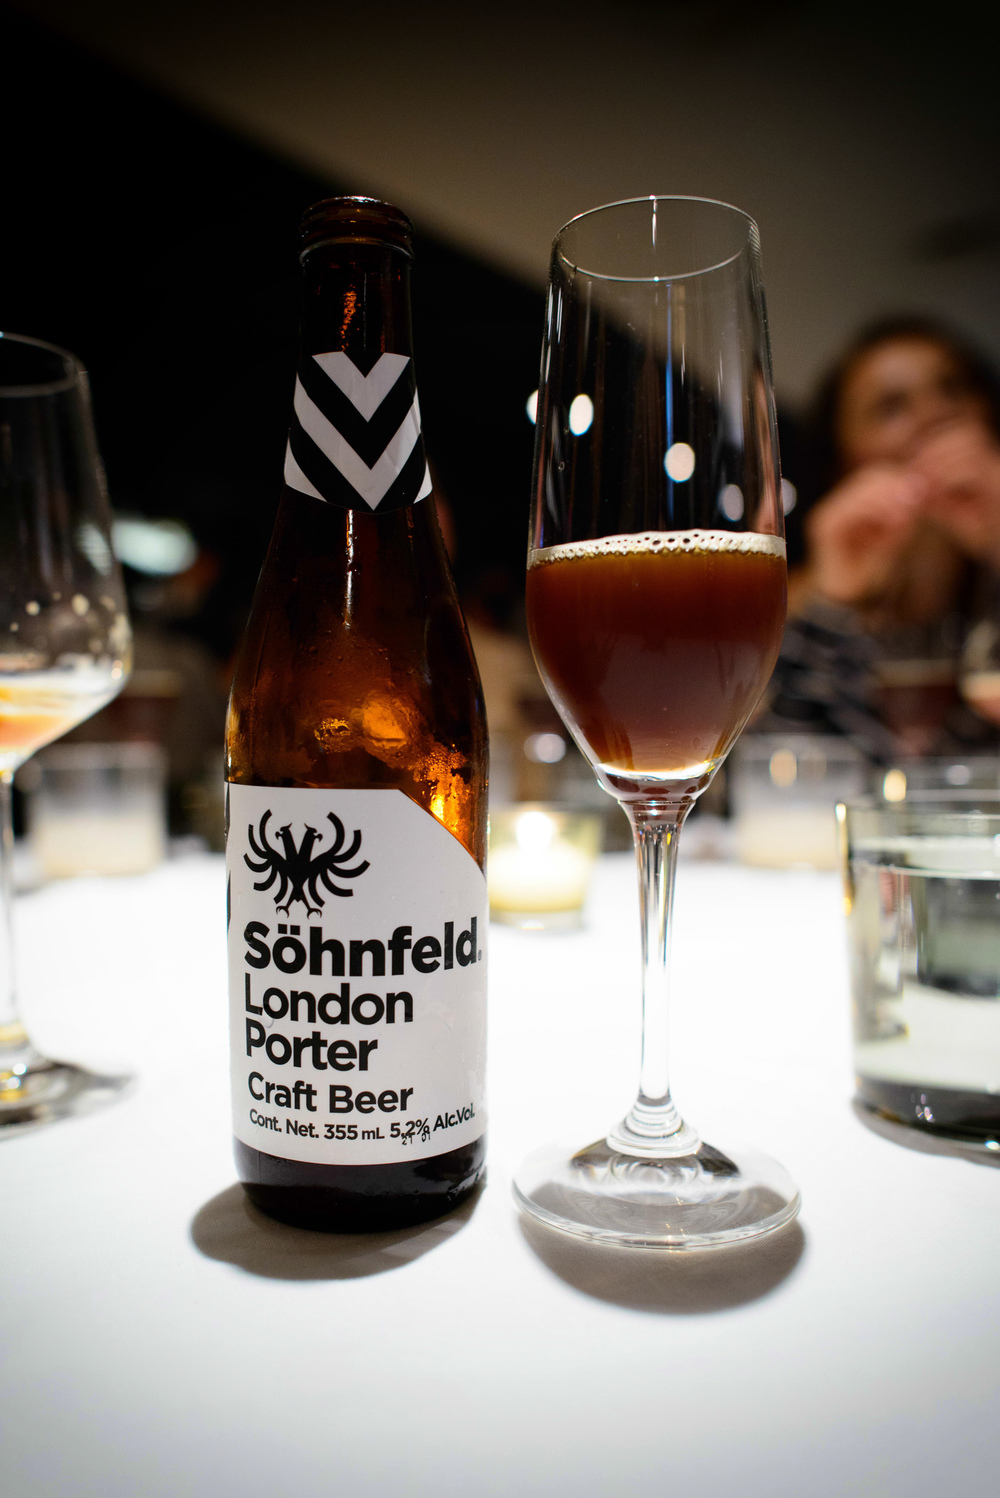 Söhnfeld London Porter